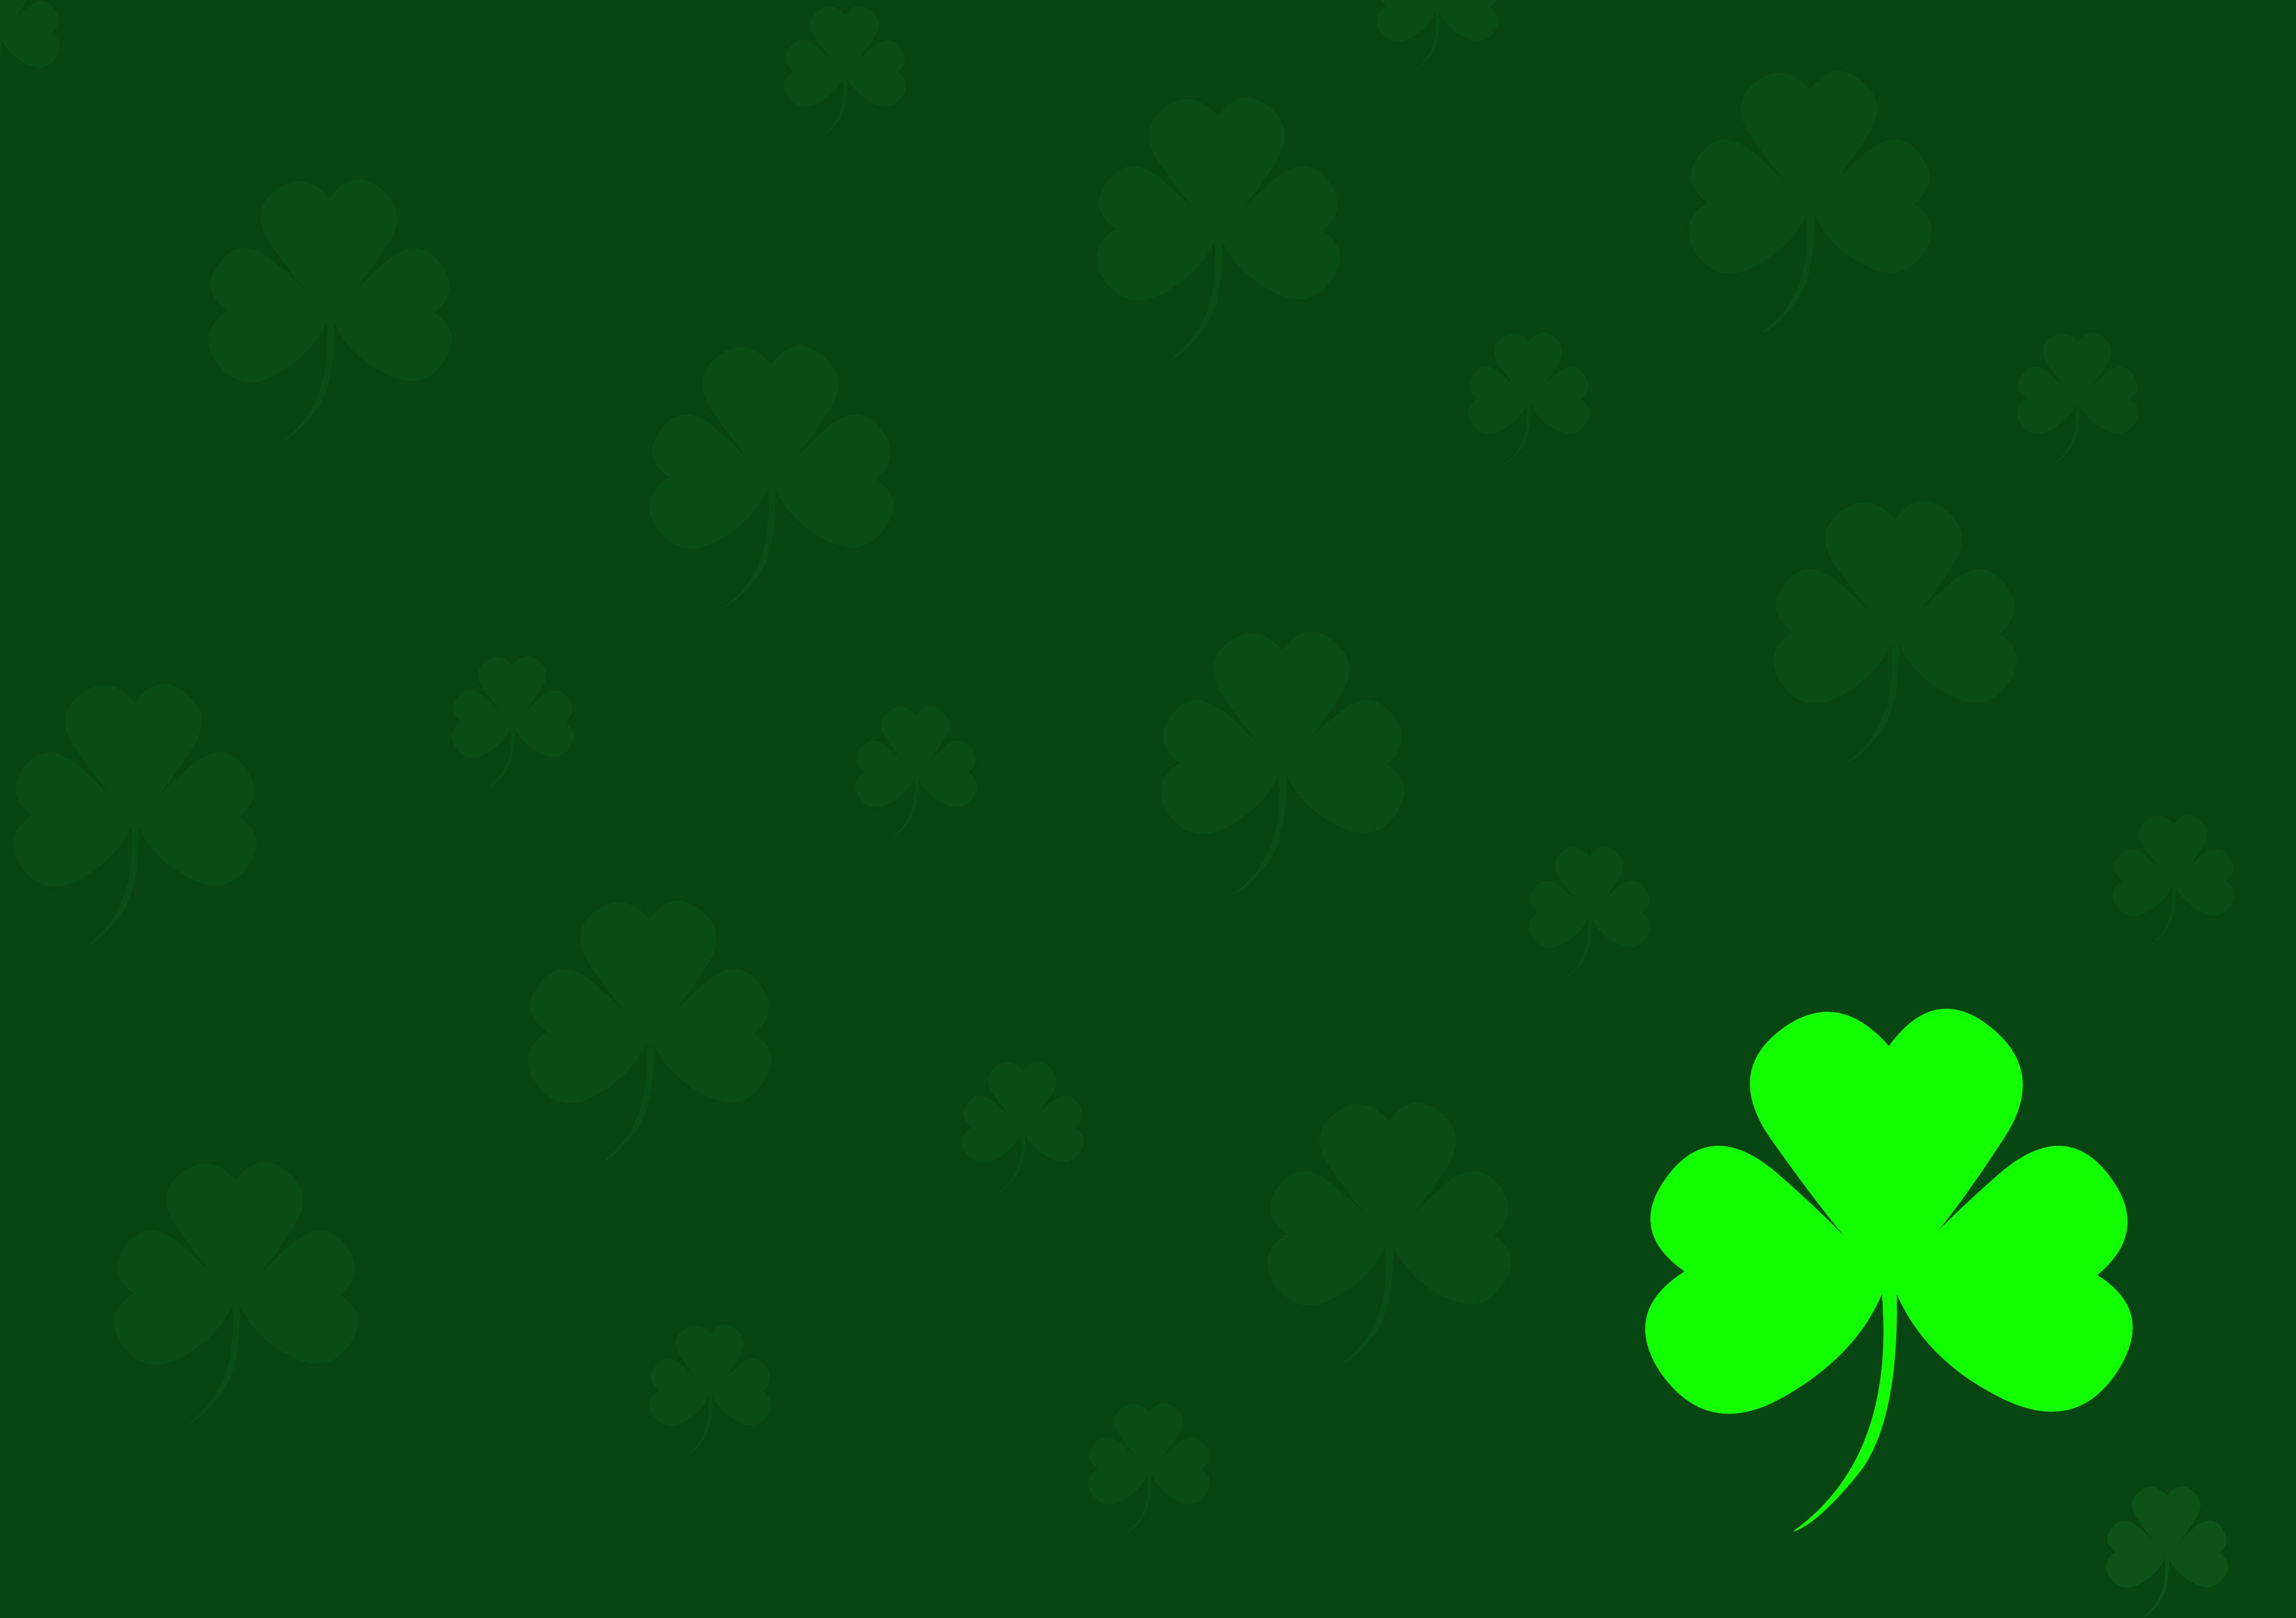 download Irish Shamrock Wallpapers [5122x3609] for your 5122x3609